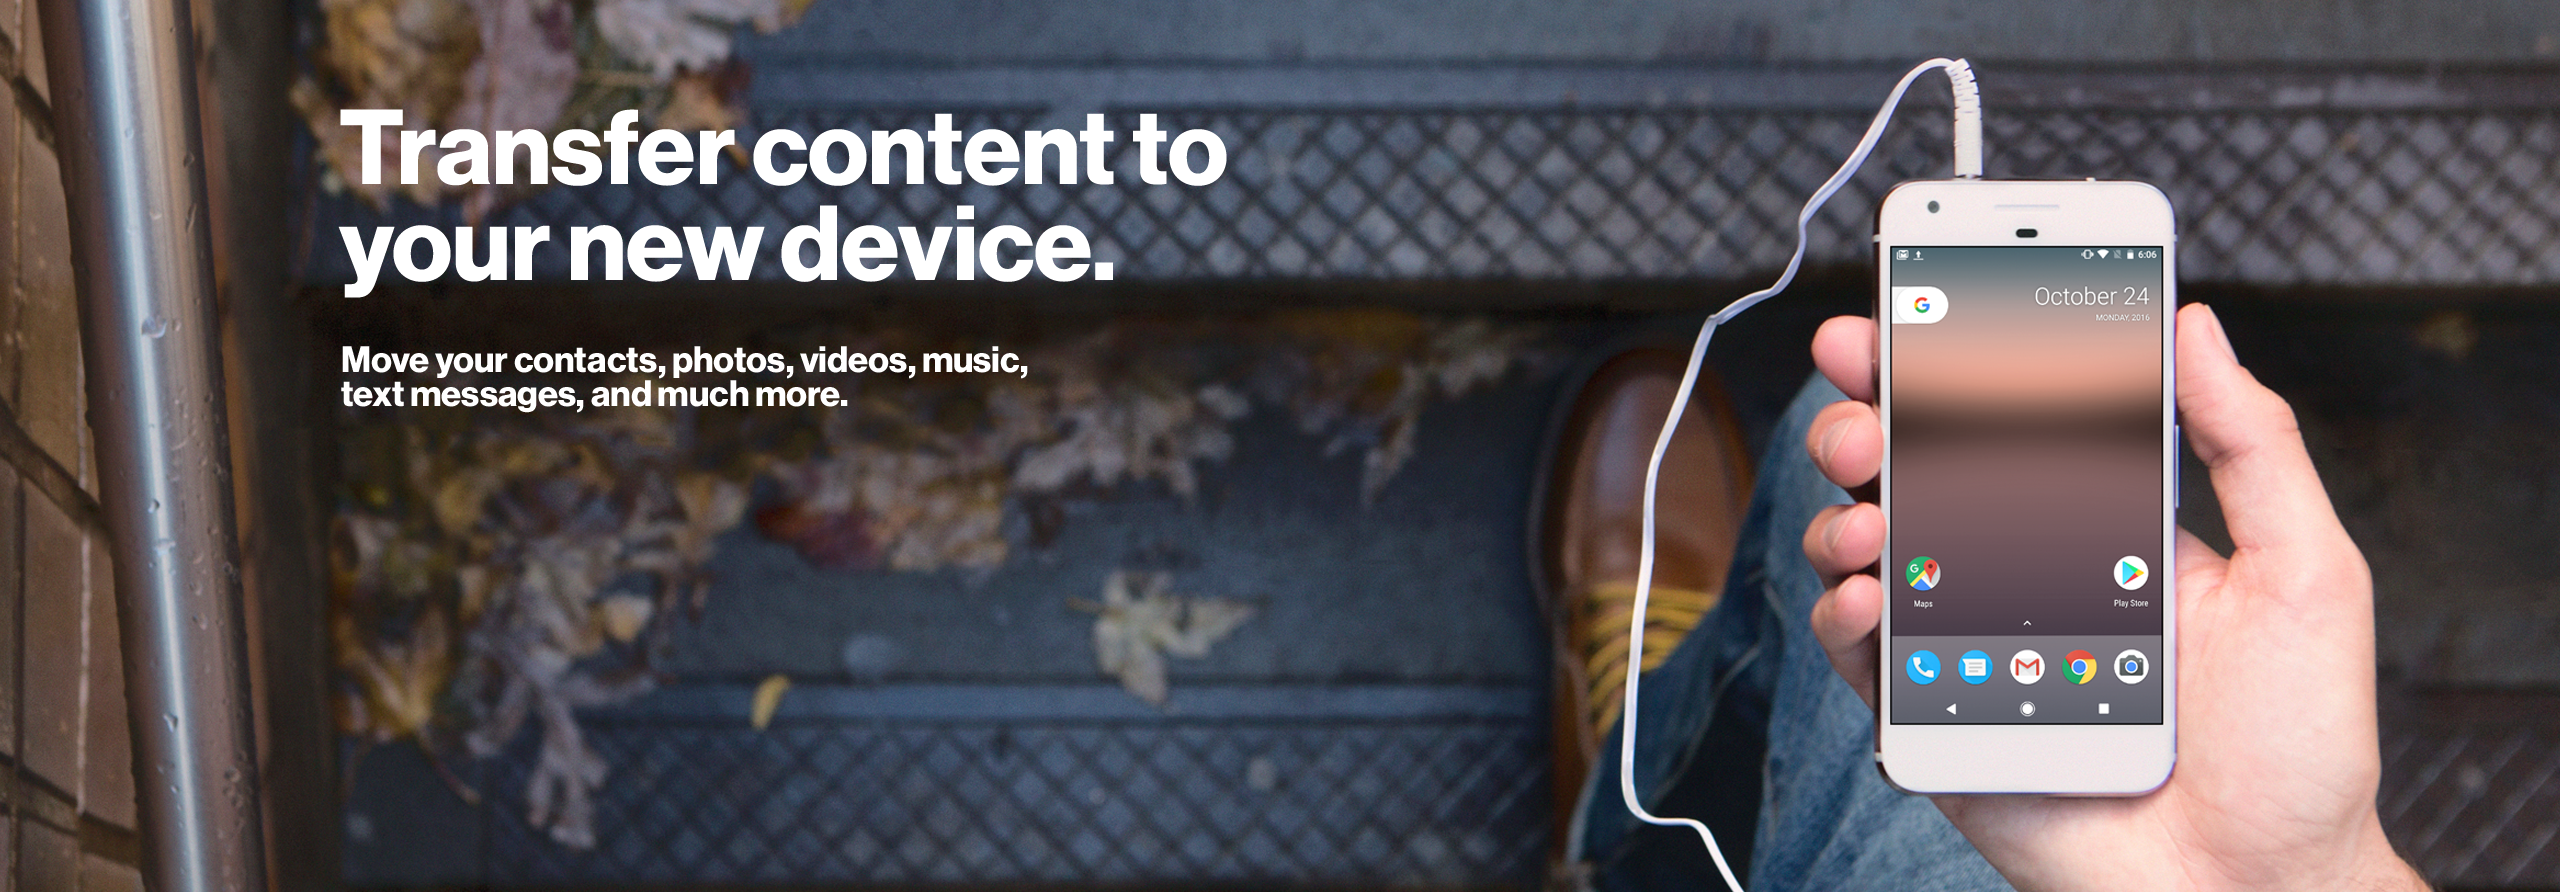 Transfer Contacts Other Content Between Devices | Verizon ...